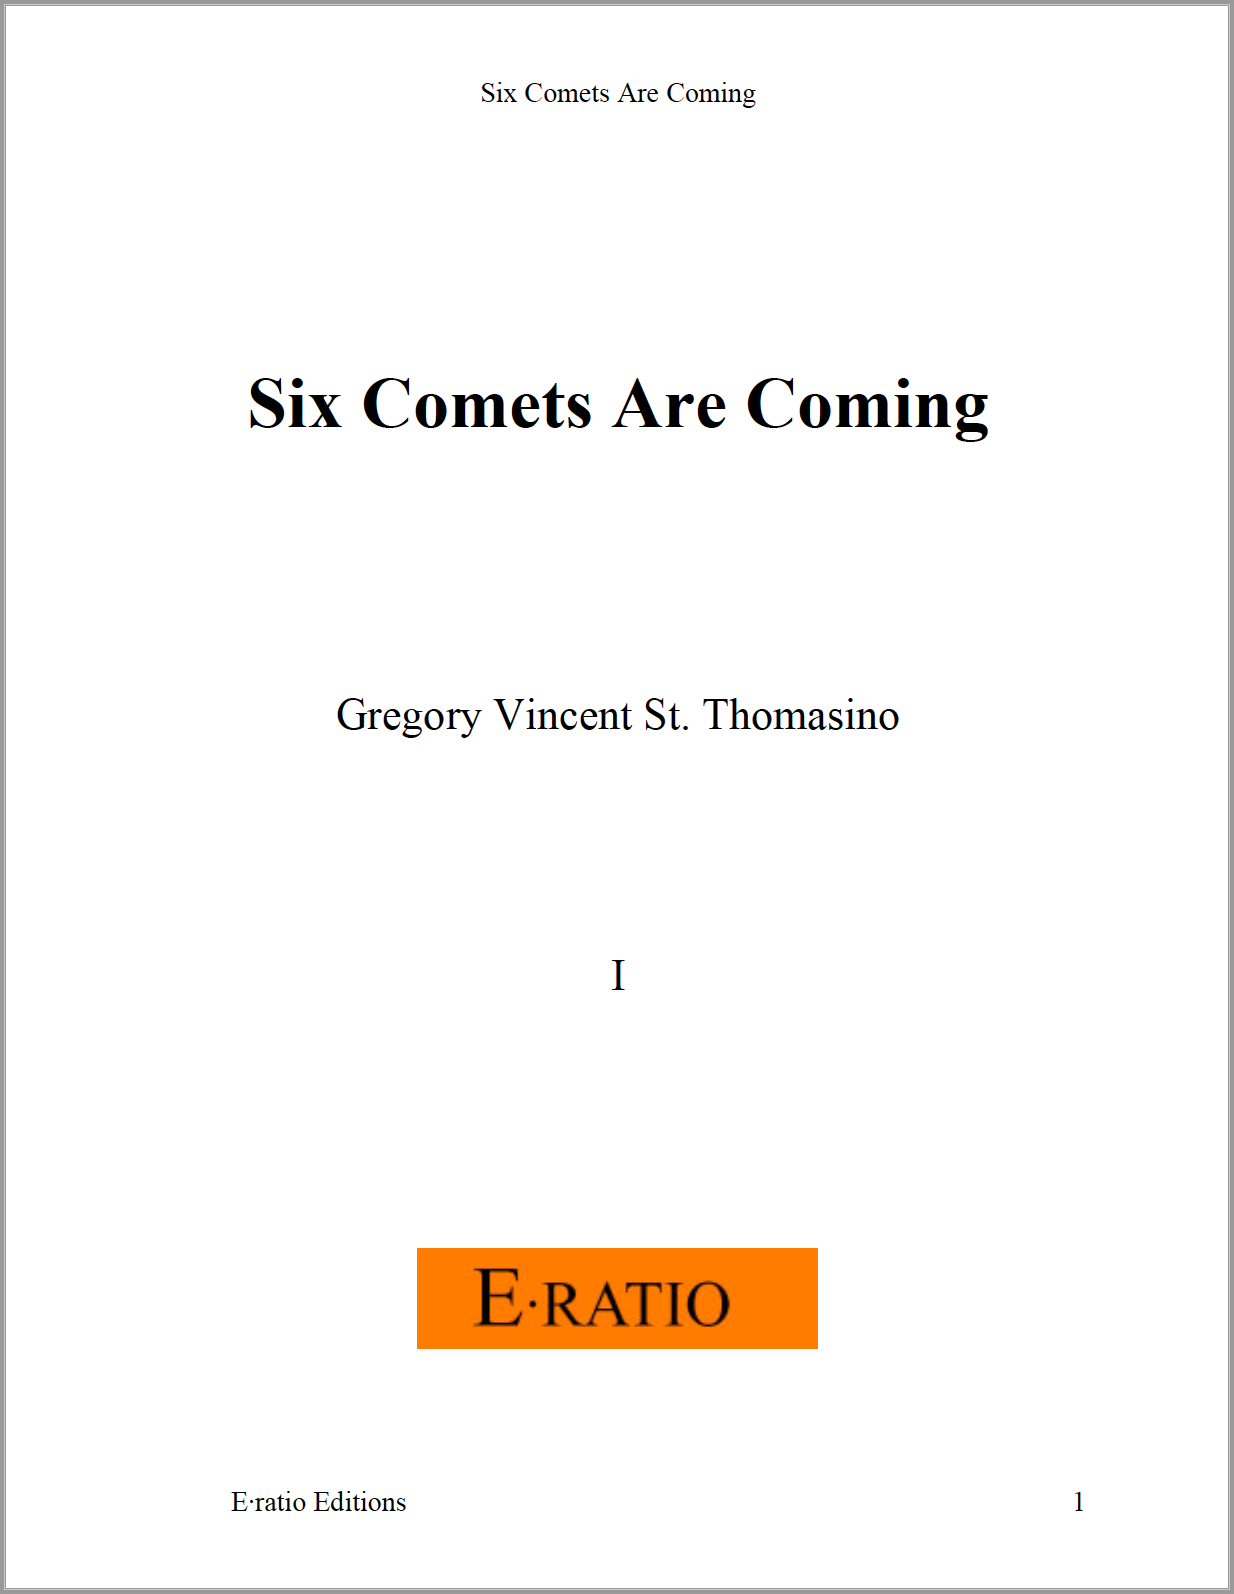 Six Comets Are Coming